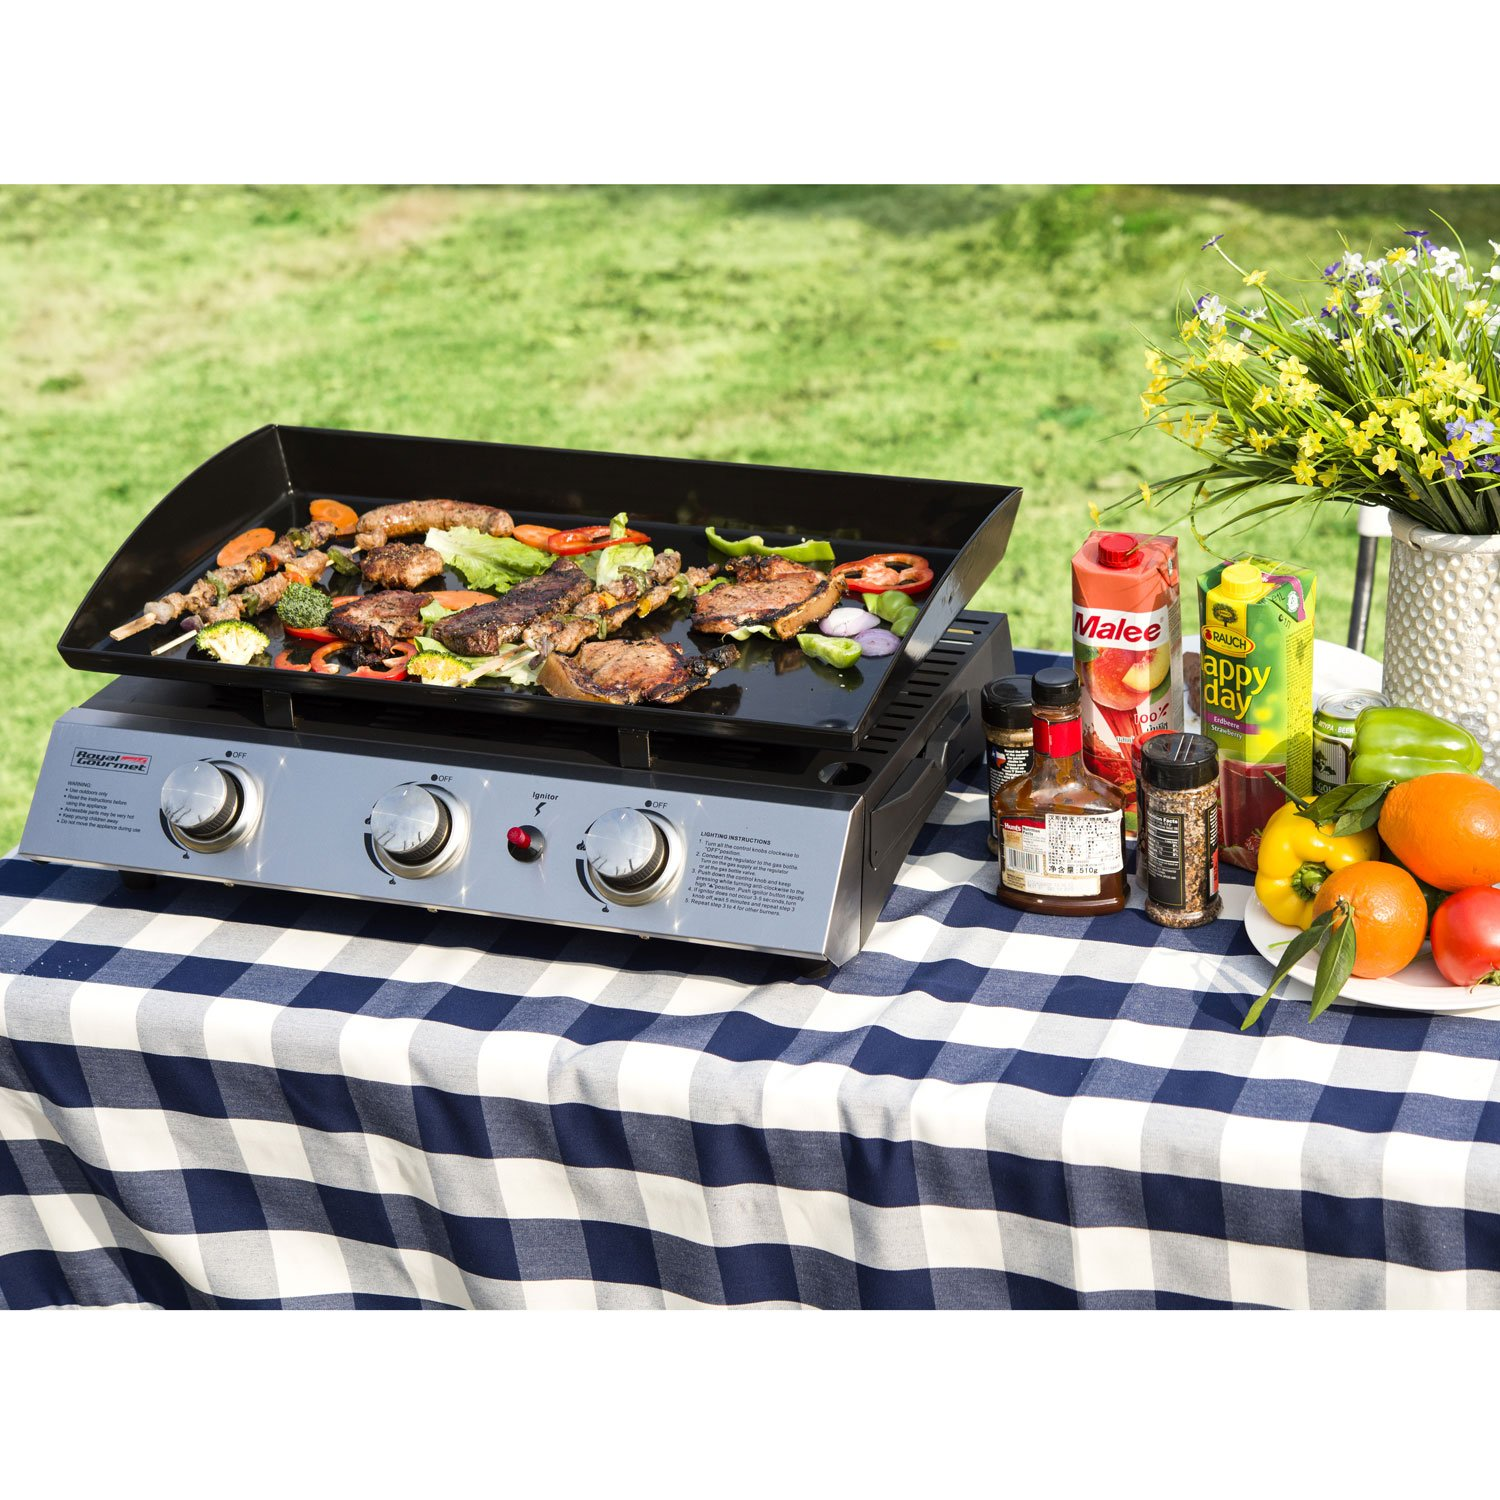 Royal Gourmet Best Propane Gas Grill Reviews